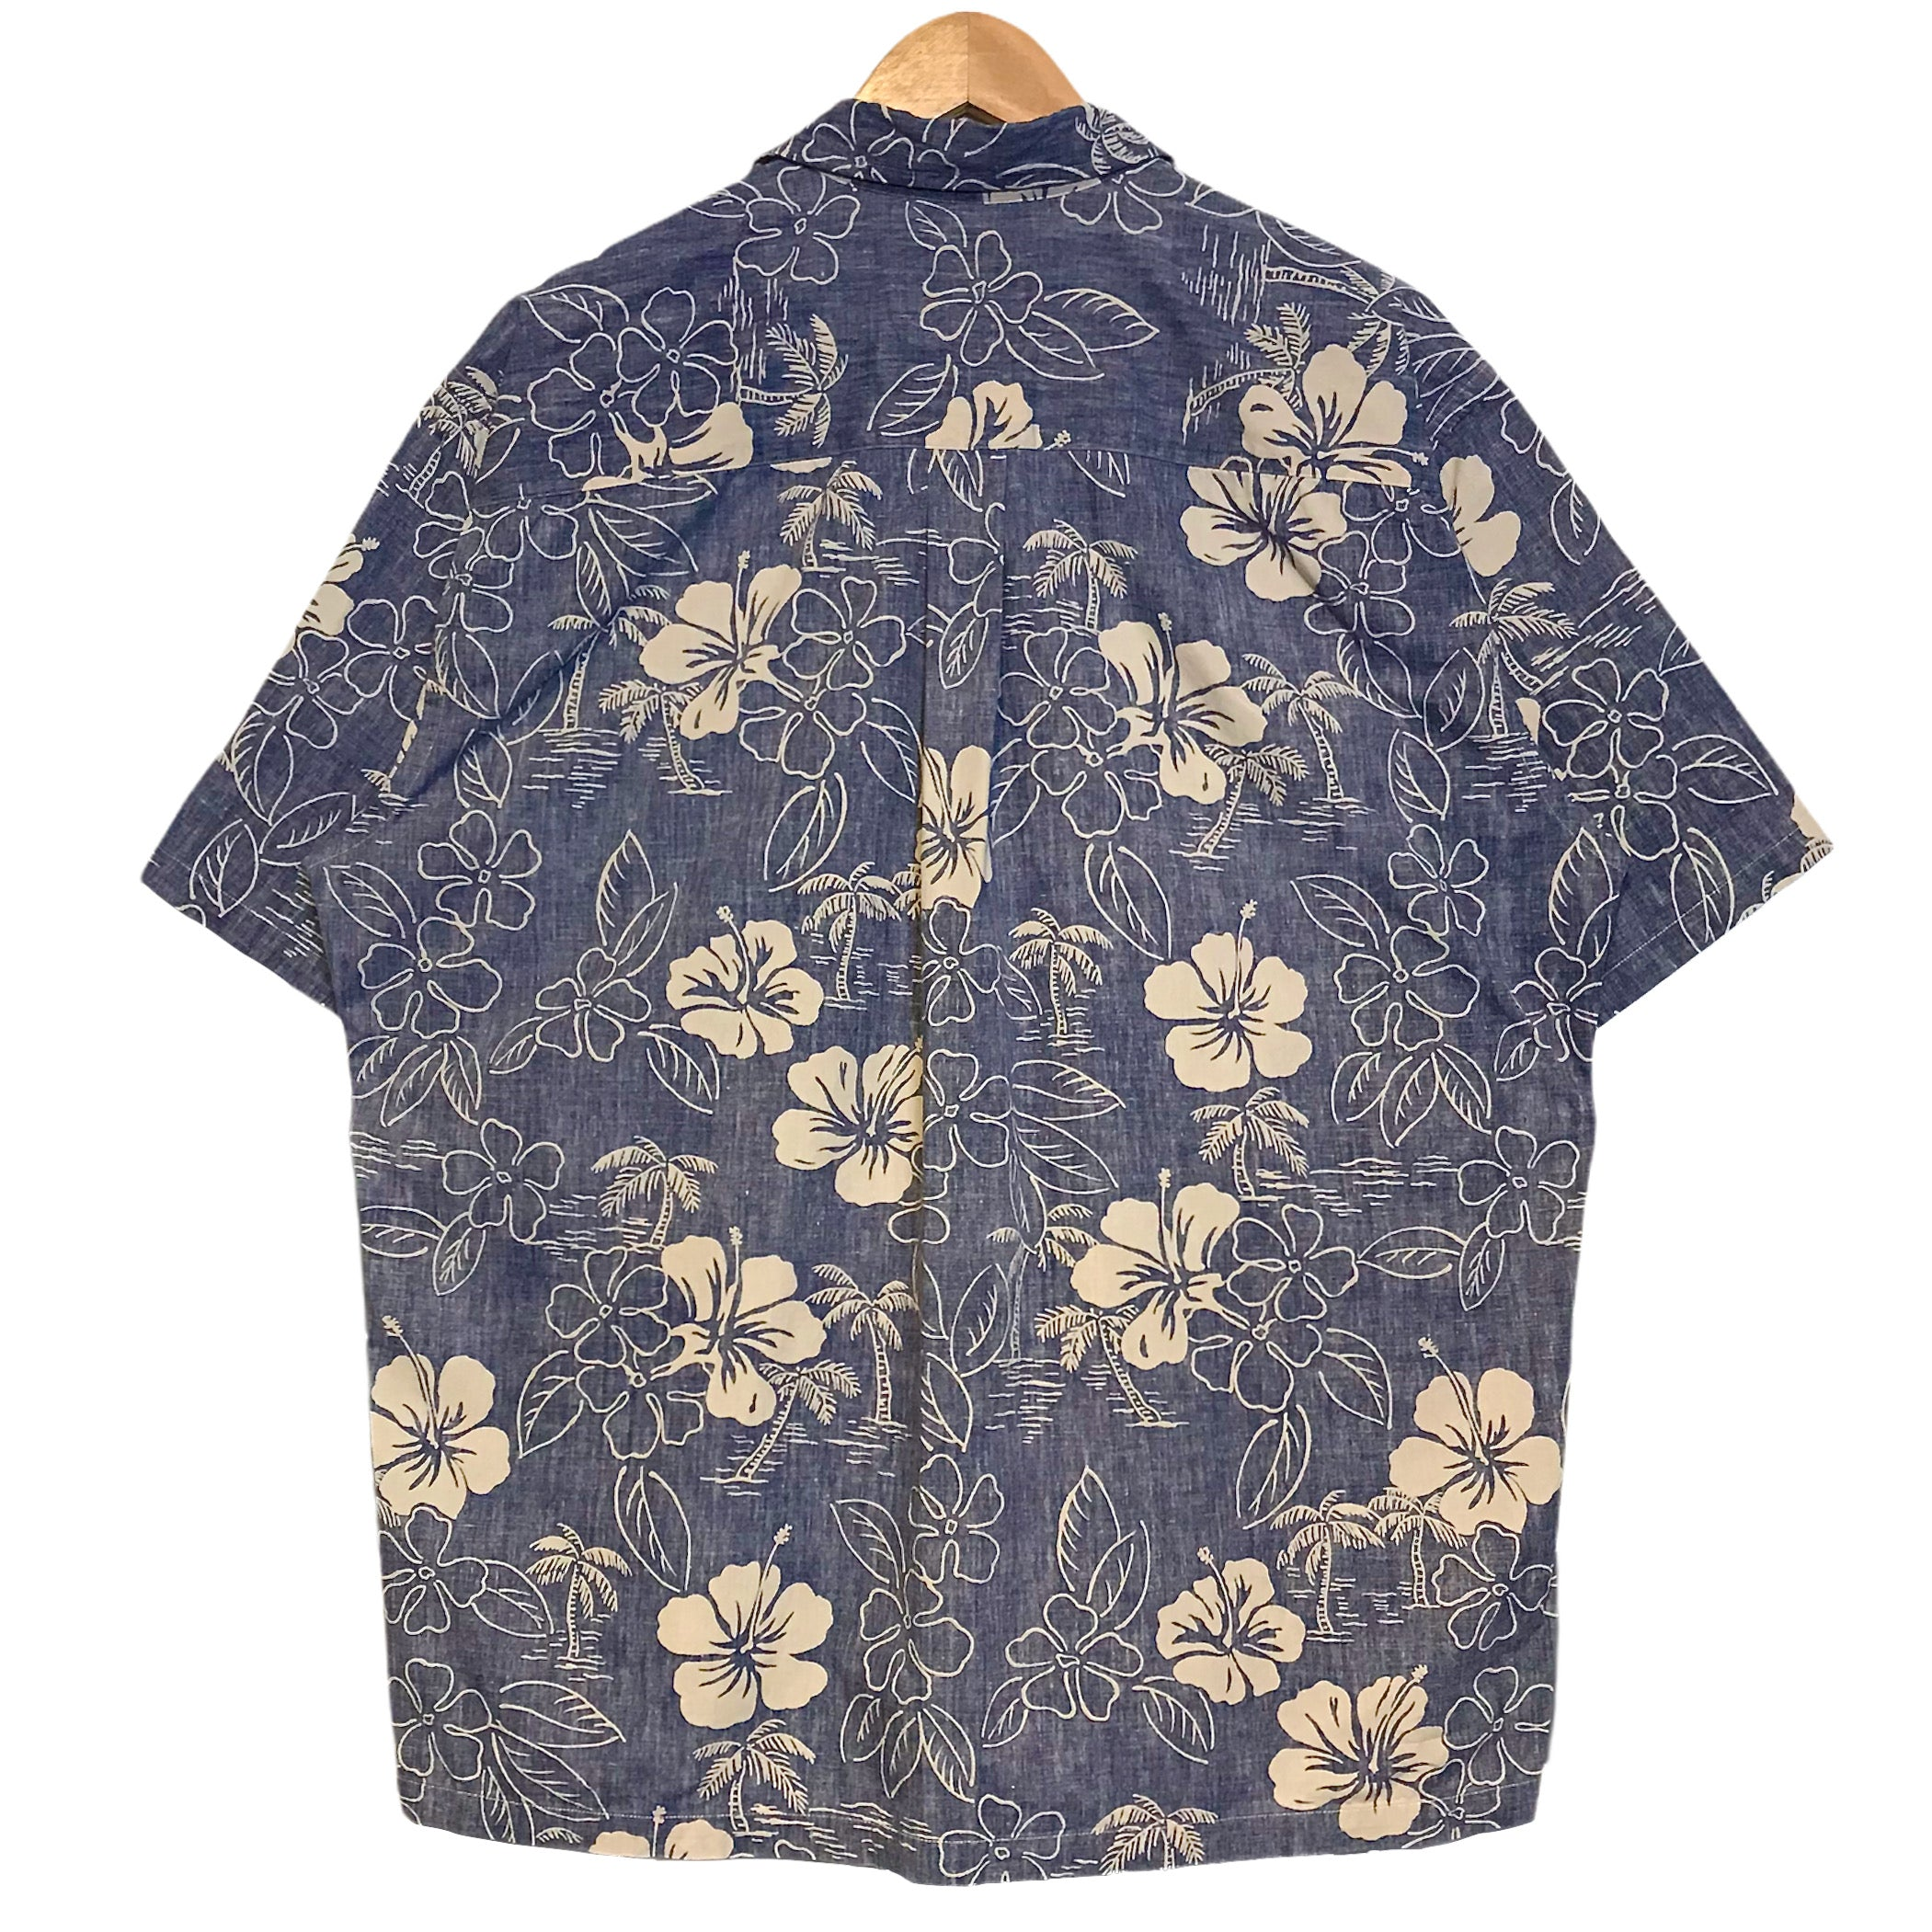 VTG COOKE STREET ALOHA SHIRT (LARGE)